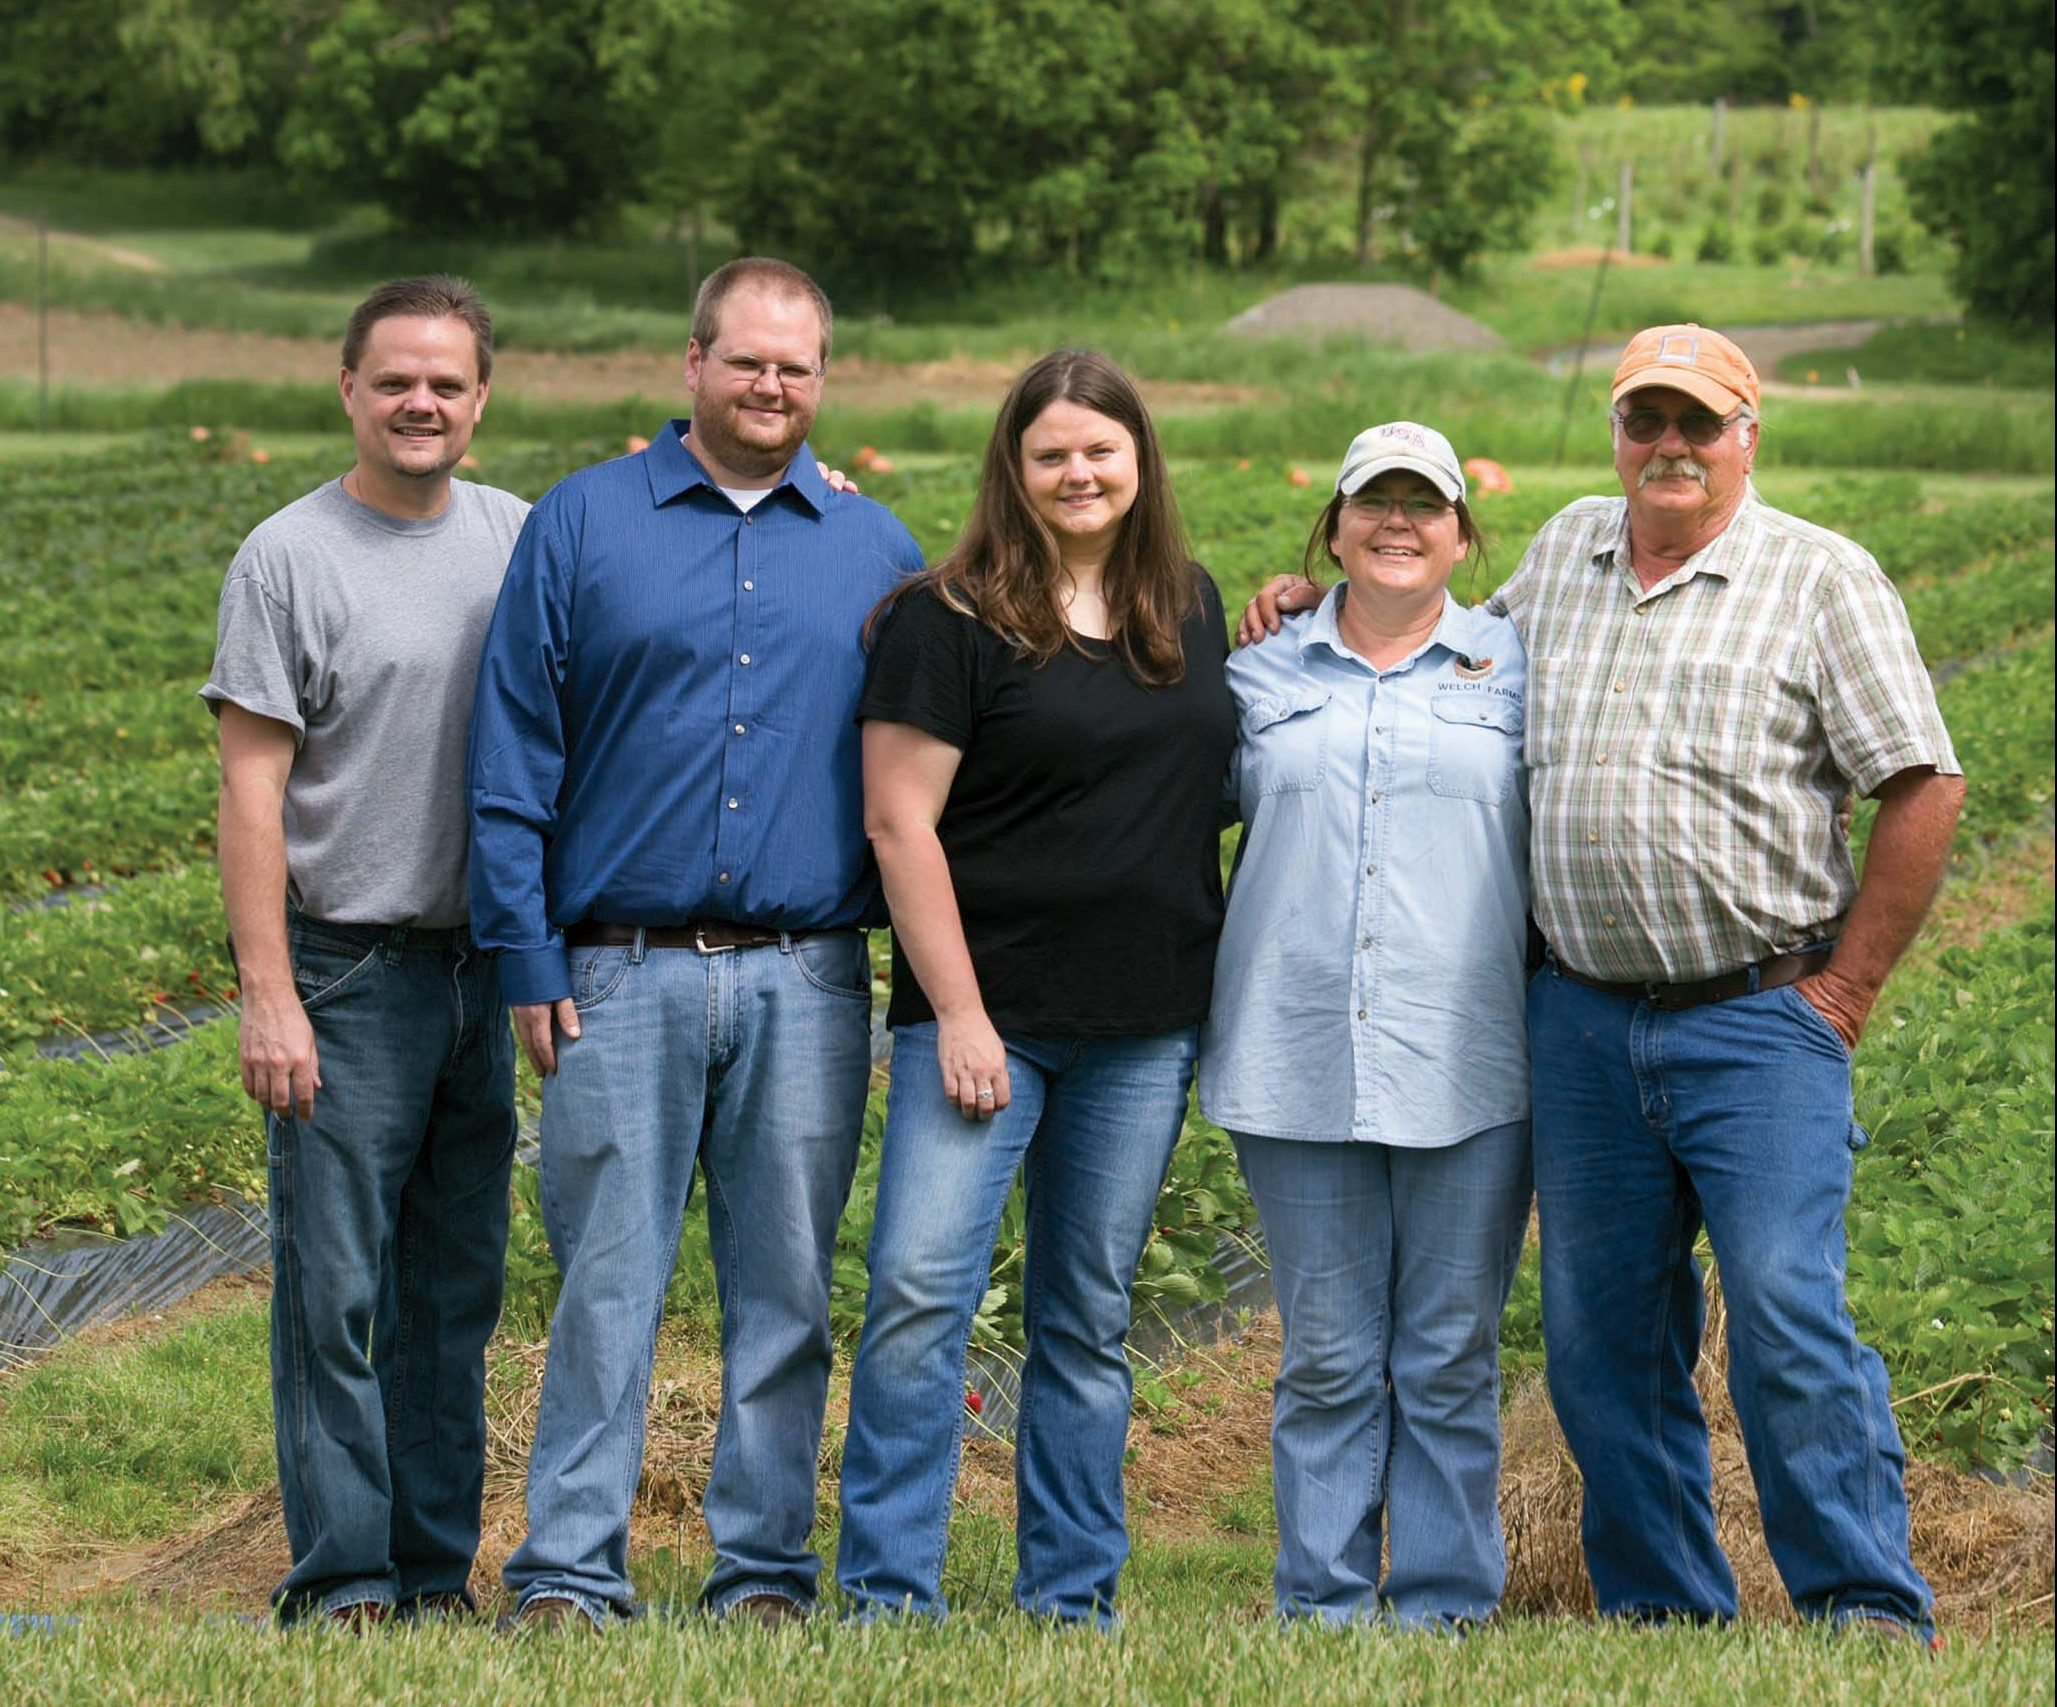 (Left to Right) David Stewart, Jeremy Howard, Allison Welch, Christie Welch and Al Welch. Welch's Strawberry Farm 319 E Hydell Rd, Chillicothe, OH 45601 Phone:(740) 703-4826.(Photos by Jodi Miller)